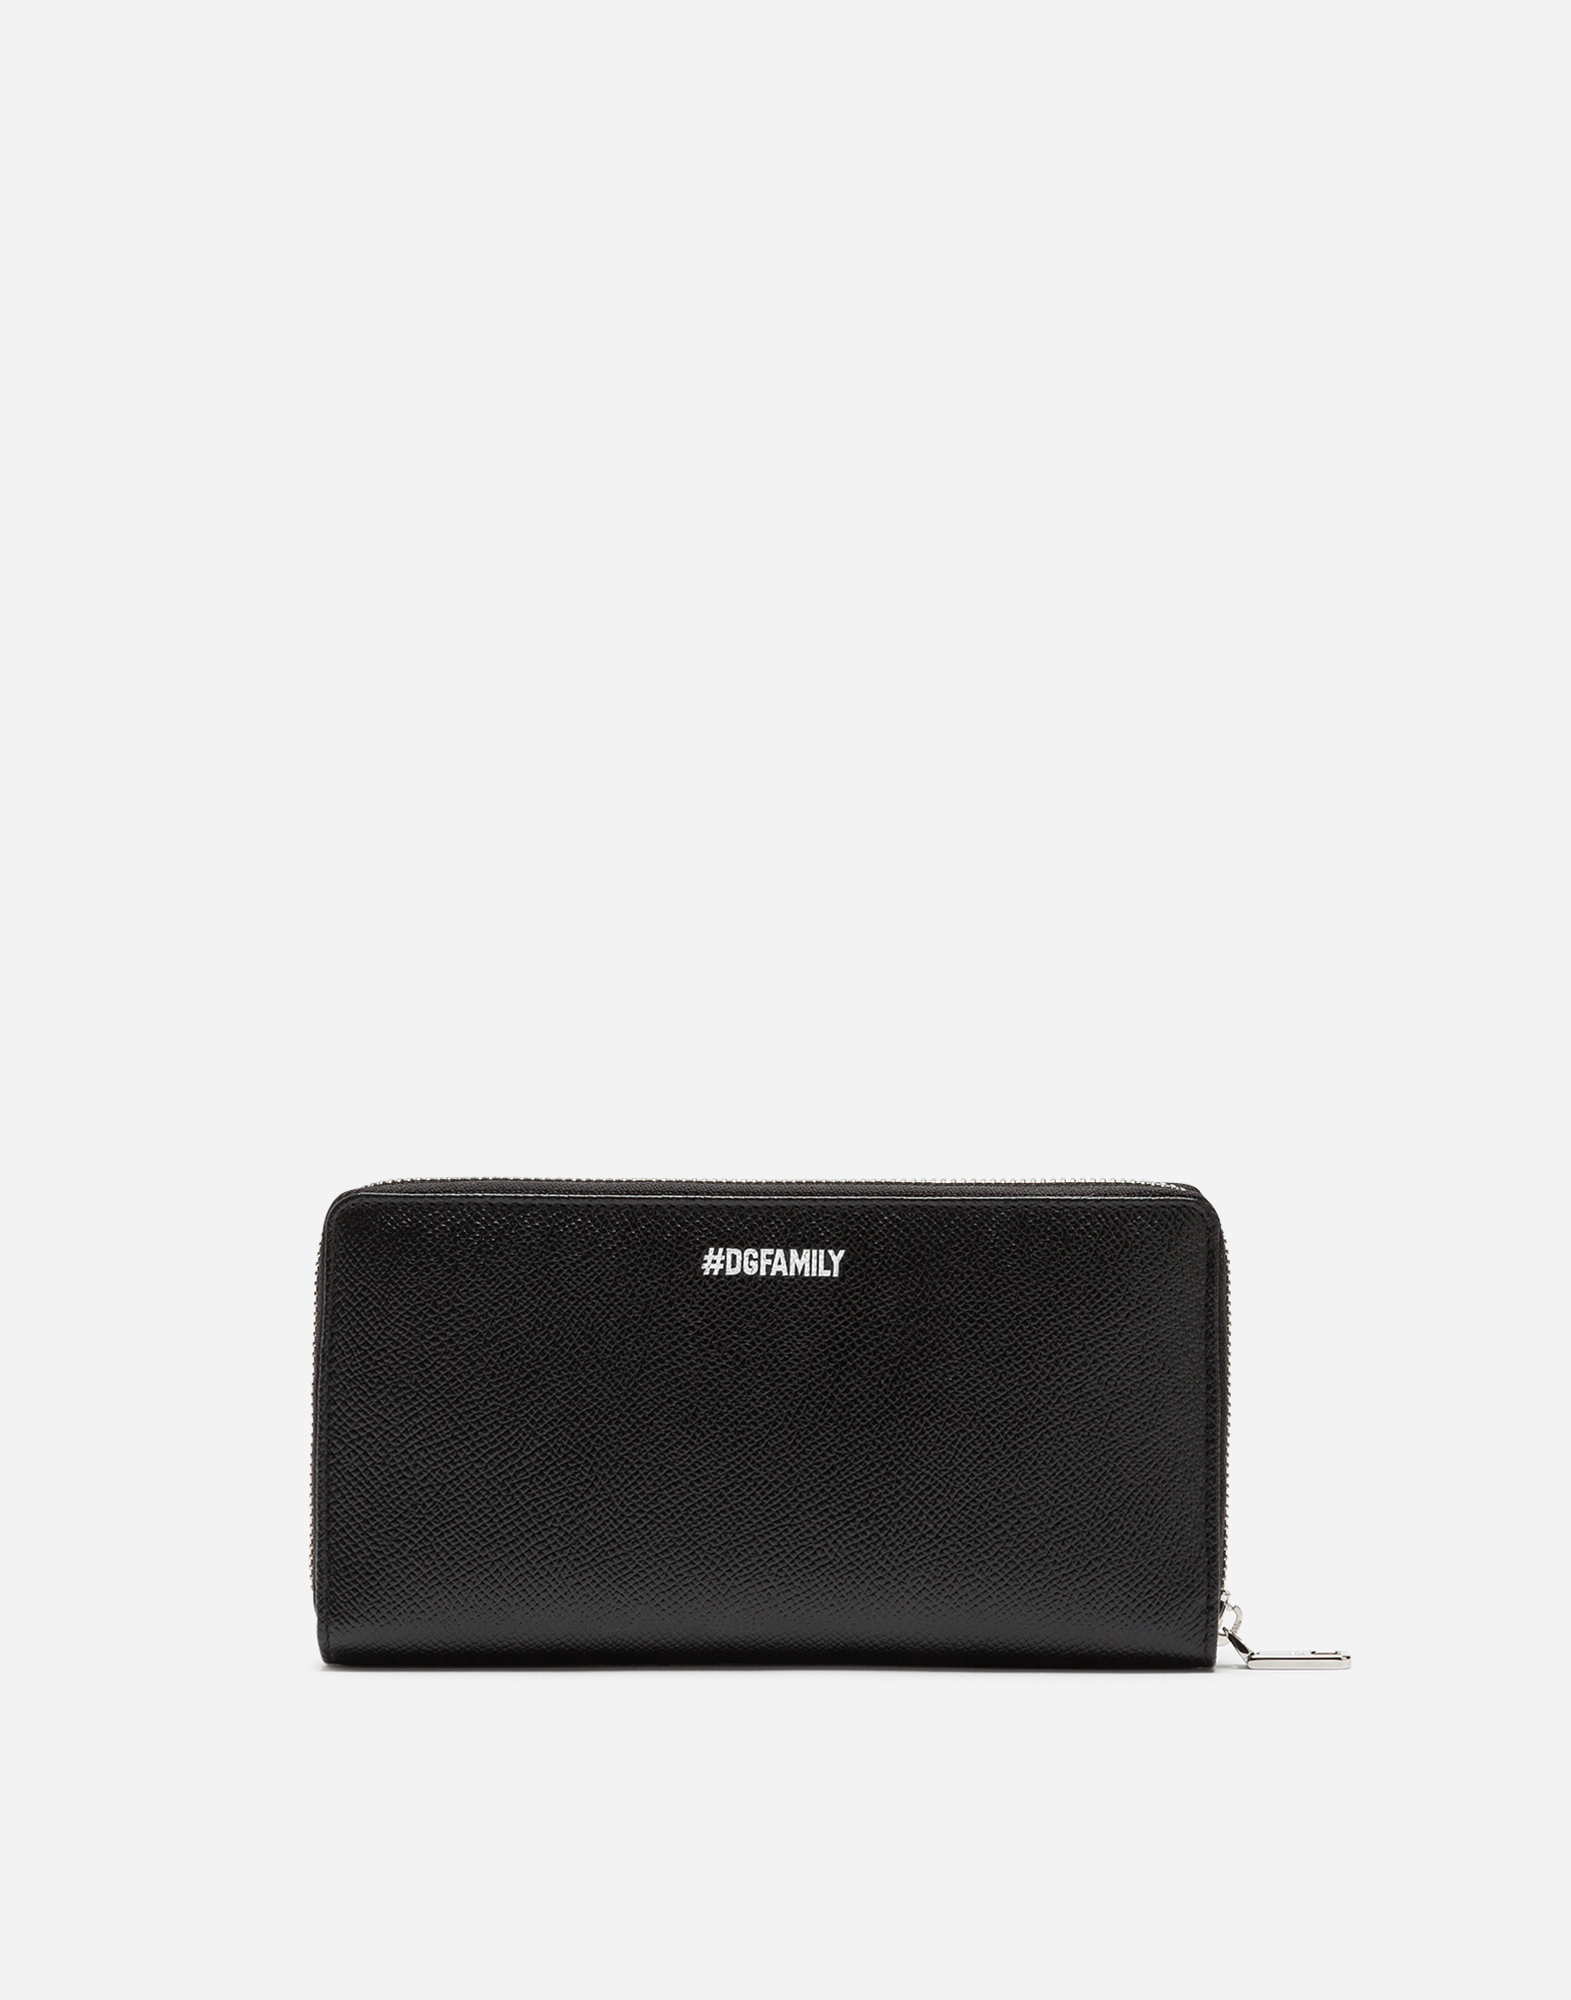 Dolce & Gabbana ZIP-AROUND WALLET IN DAUPHINE CALFSKIN WITH DESIGNERS' PATCHES